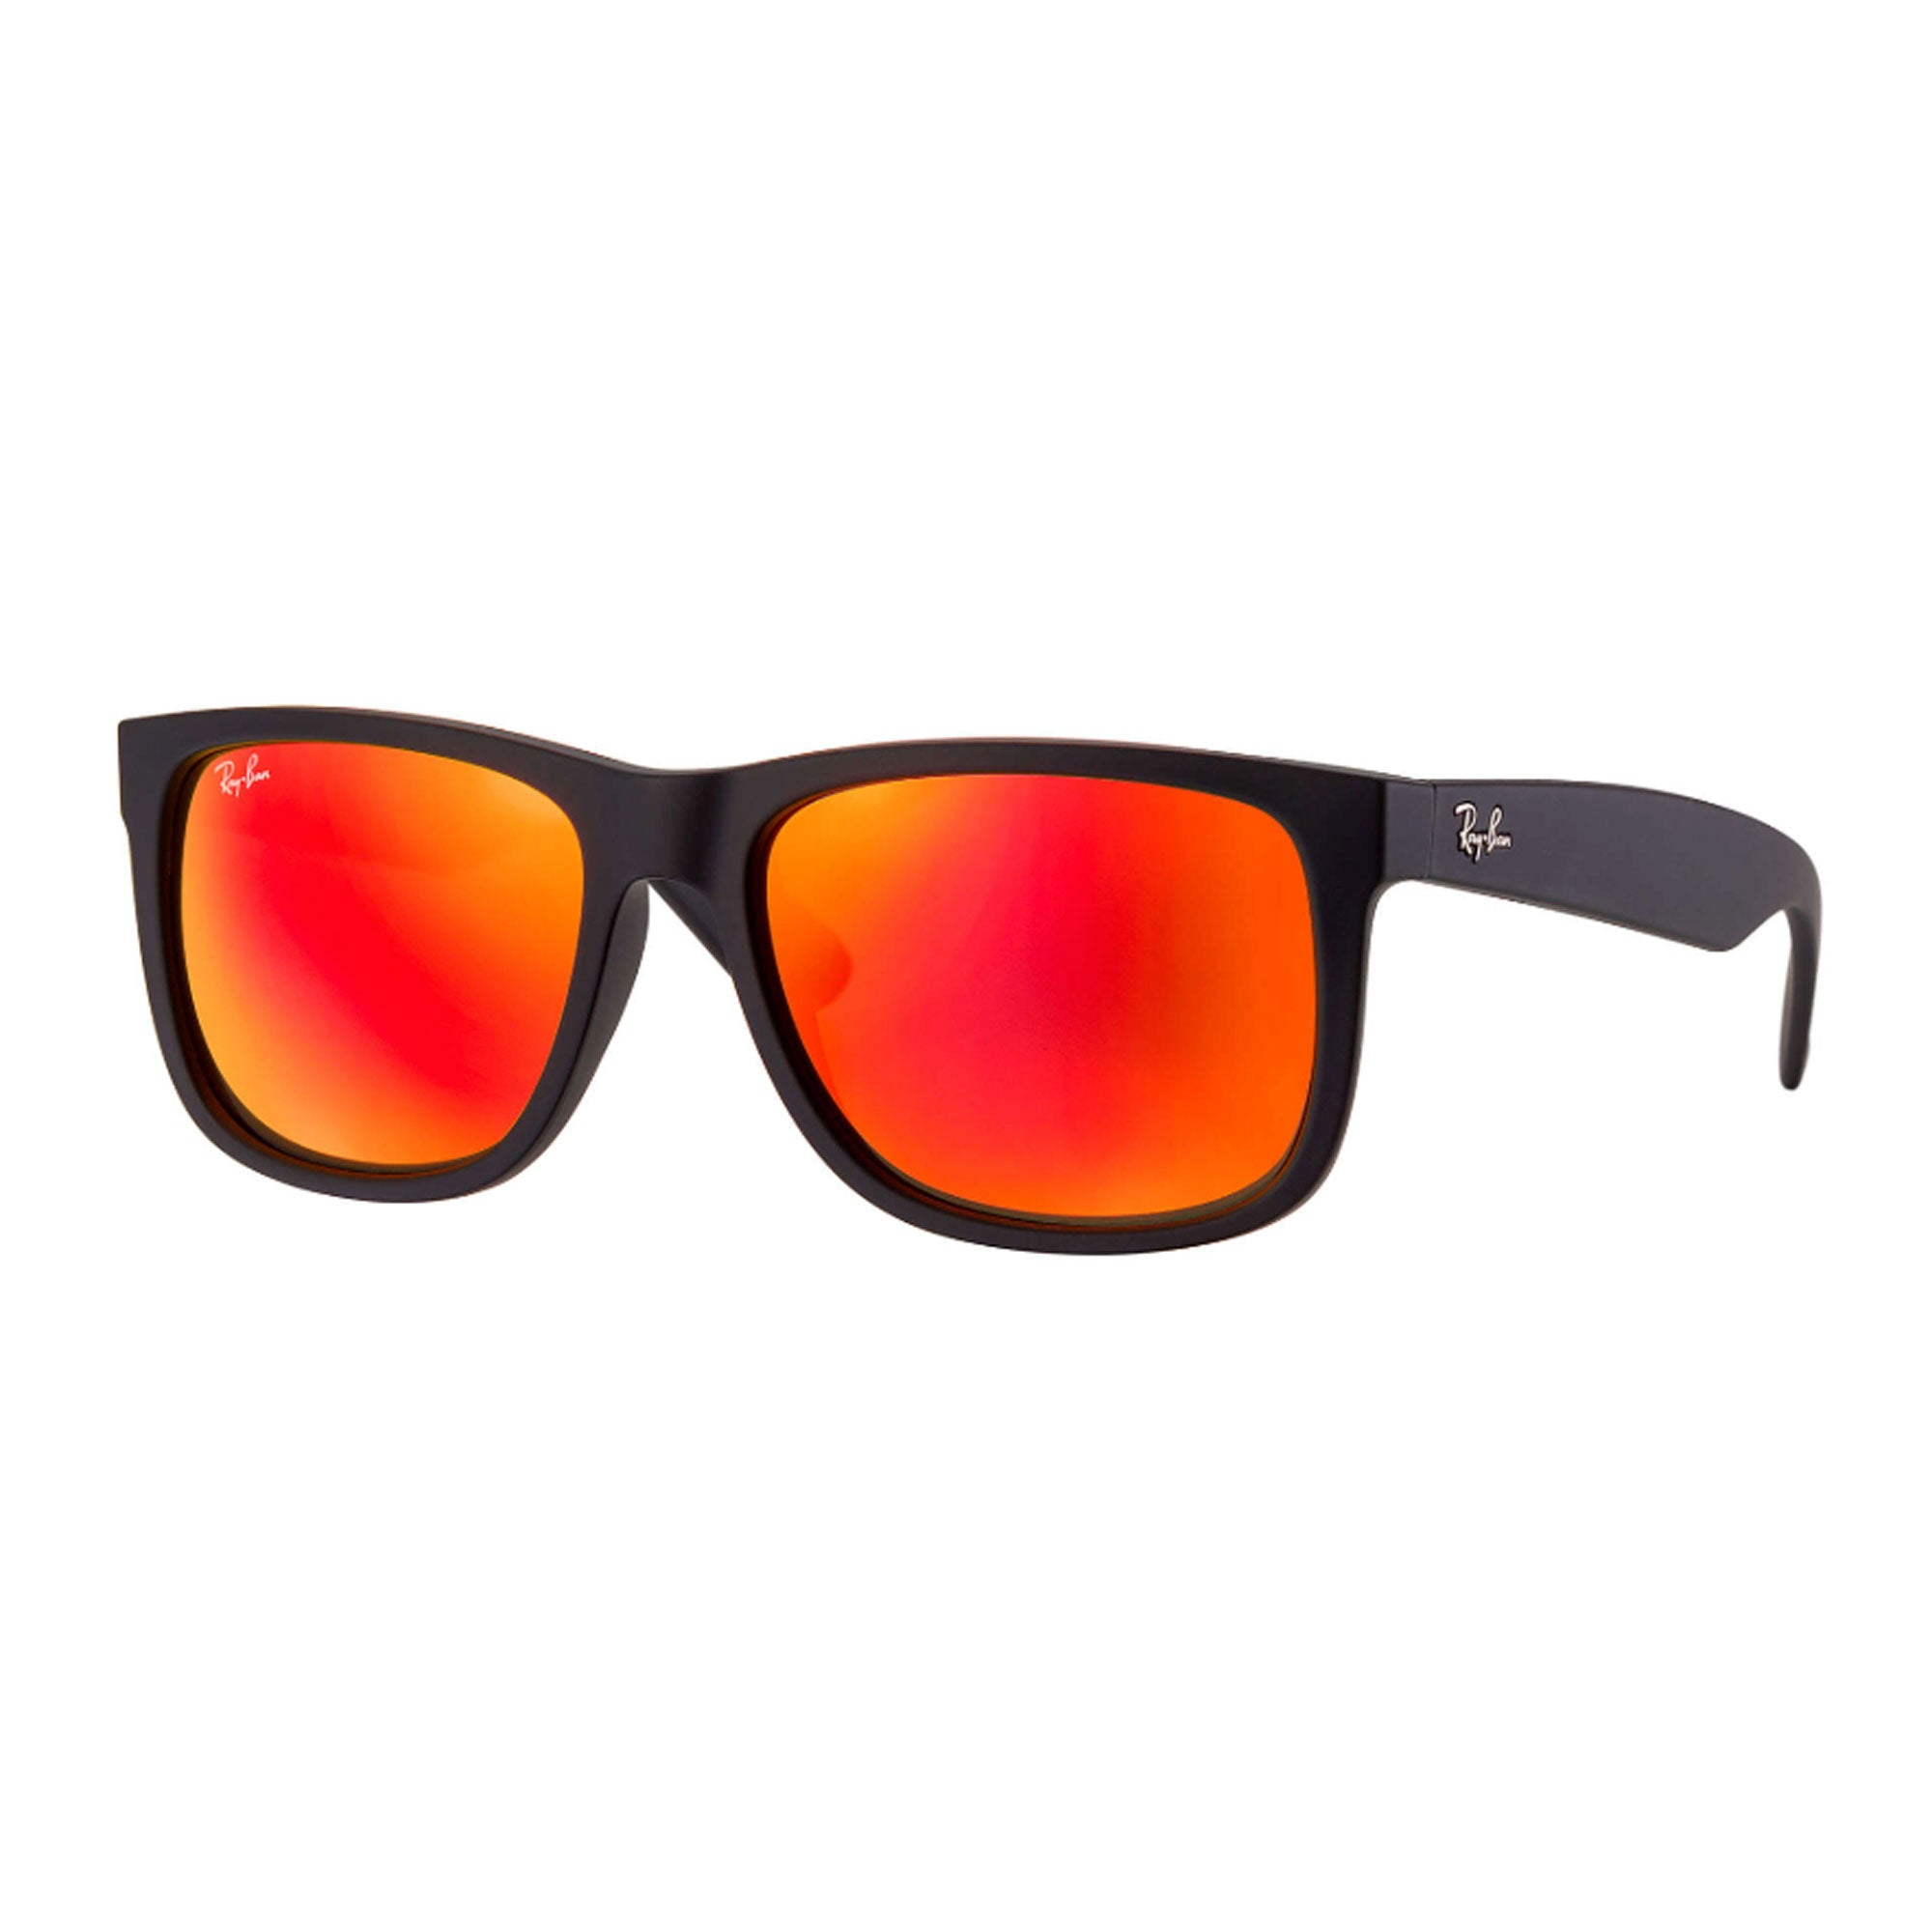 Ray-Ban Justin Classic Men's Sunglasses - Rubber Black/Orange Mirror